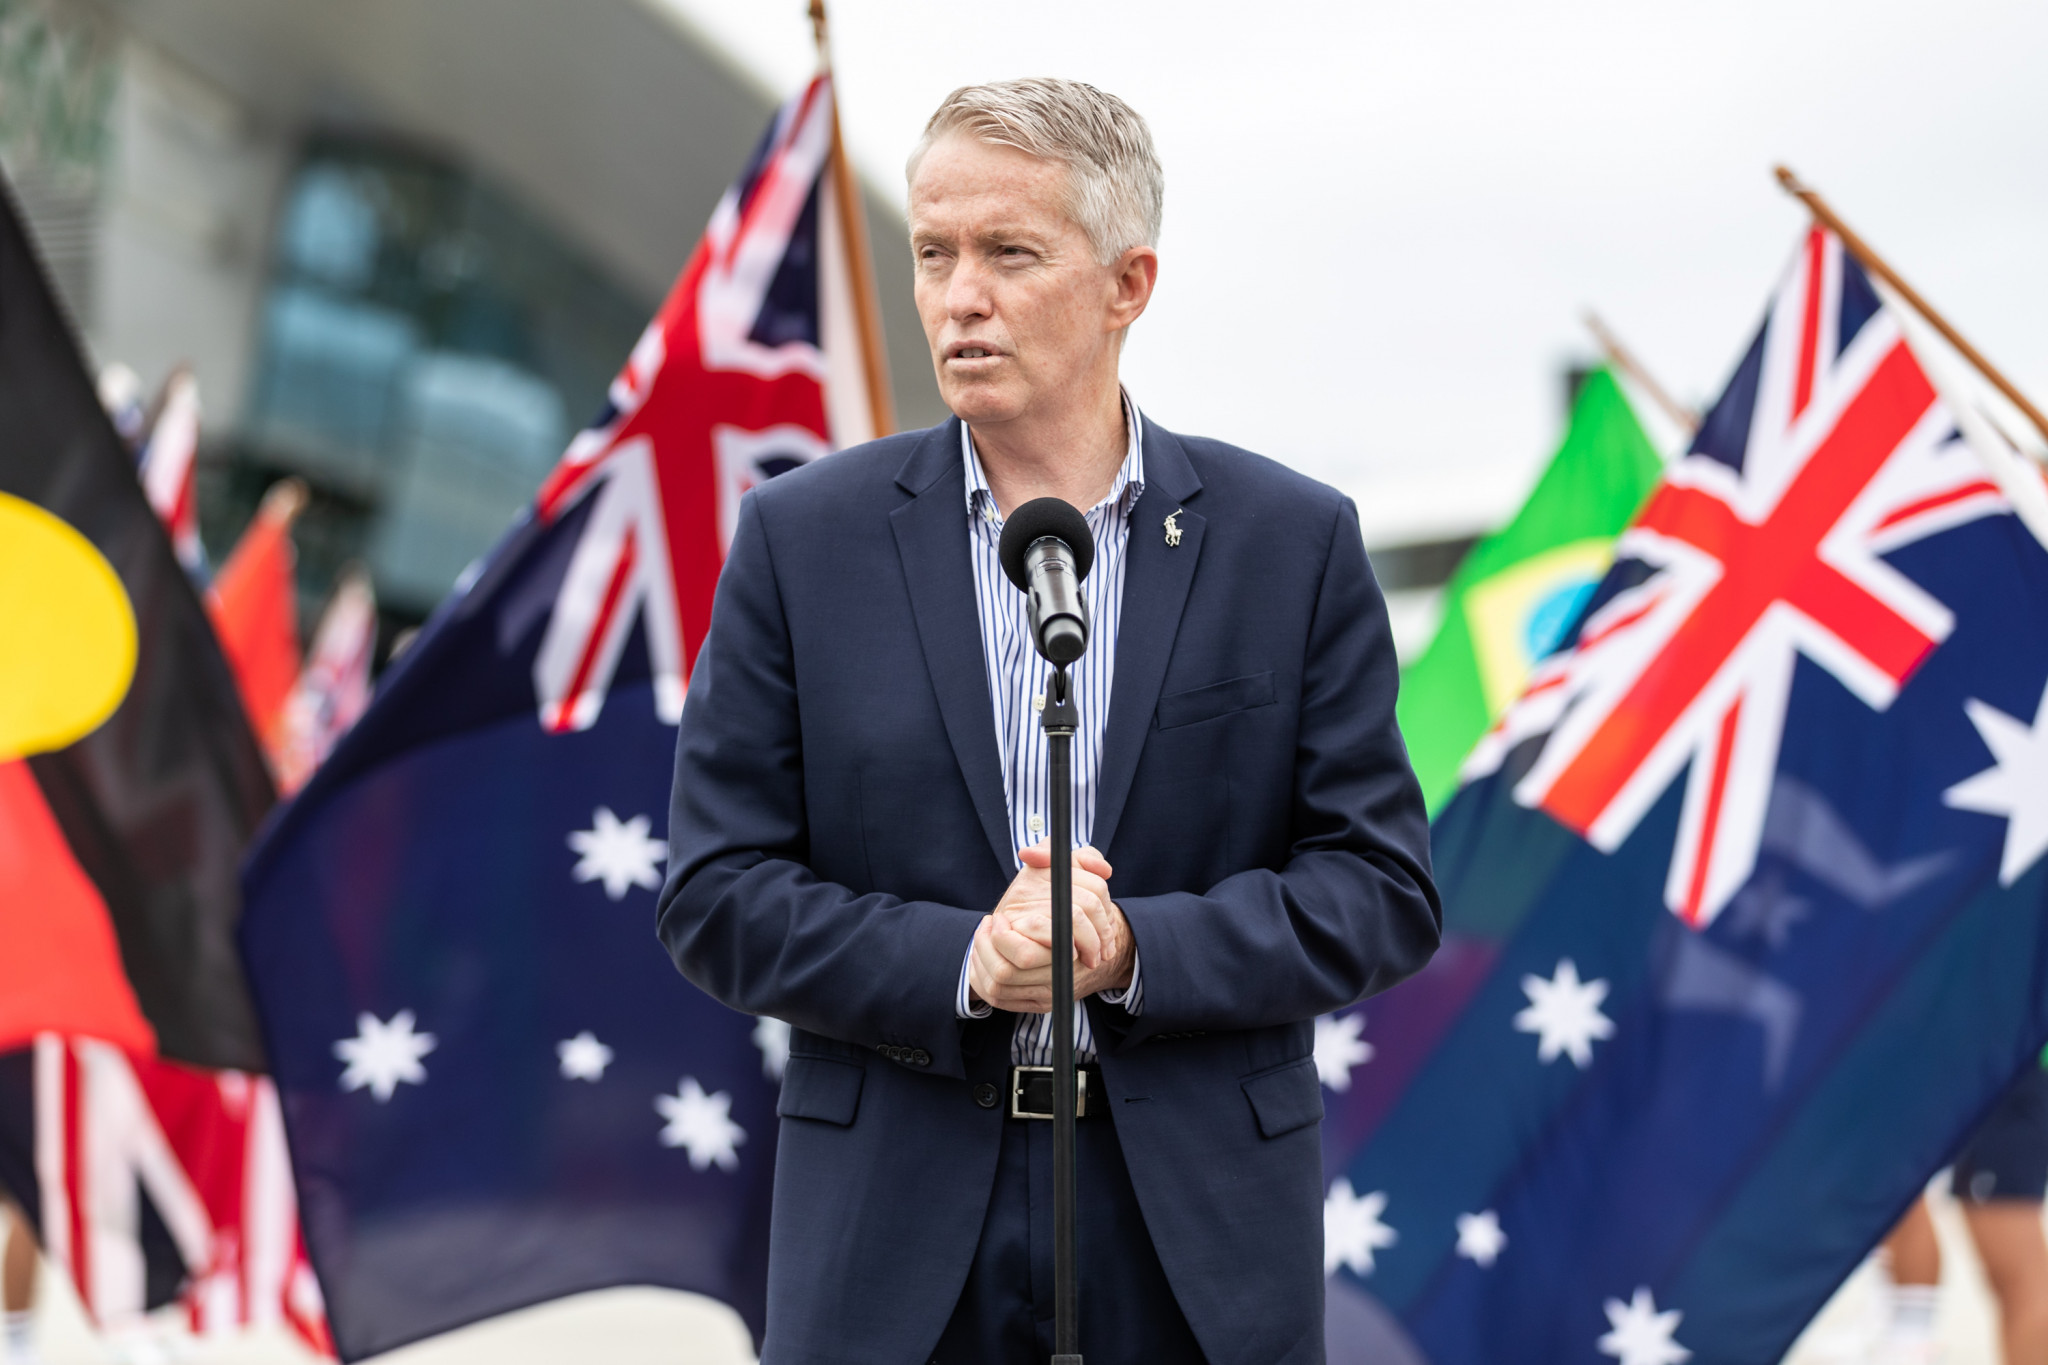 Tennis Australia chief executive doubtful whether Tokyo 2020 can be held safely